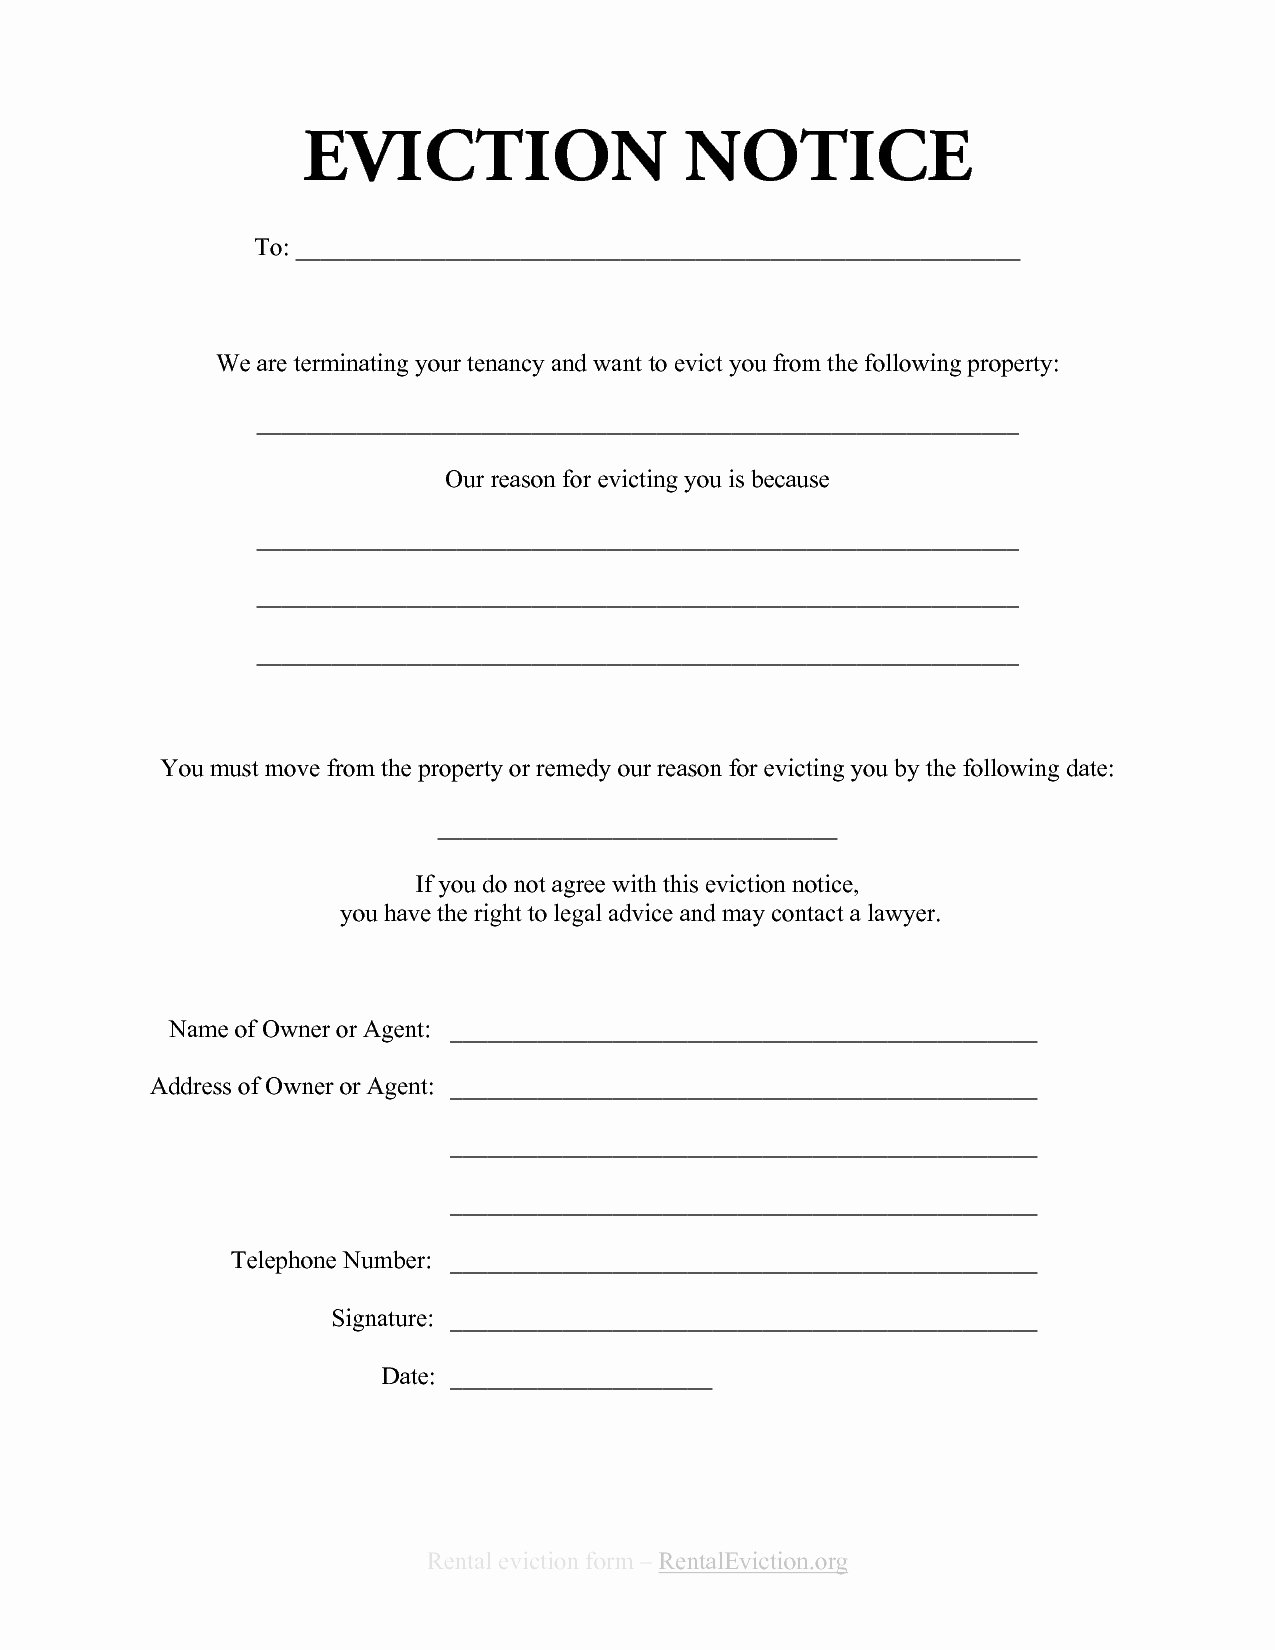 Letter Of Eviction Template Awesome Sample Eviction Letter to Family Member